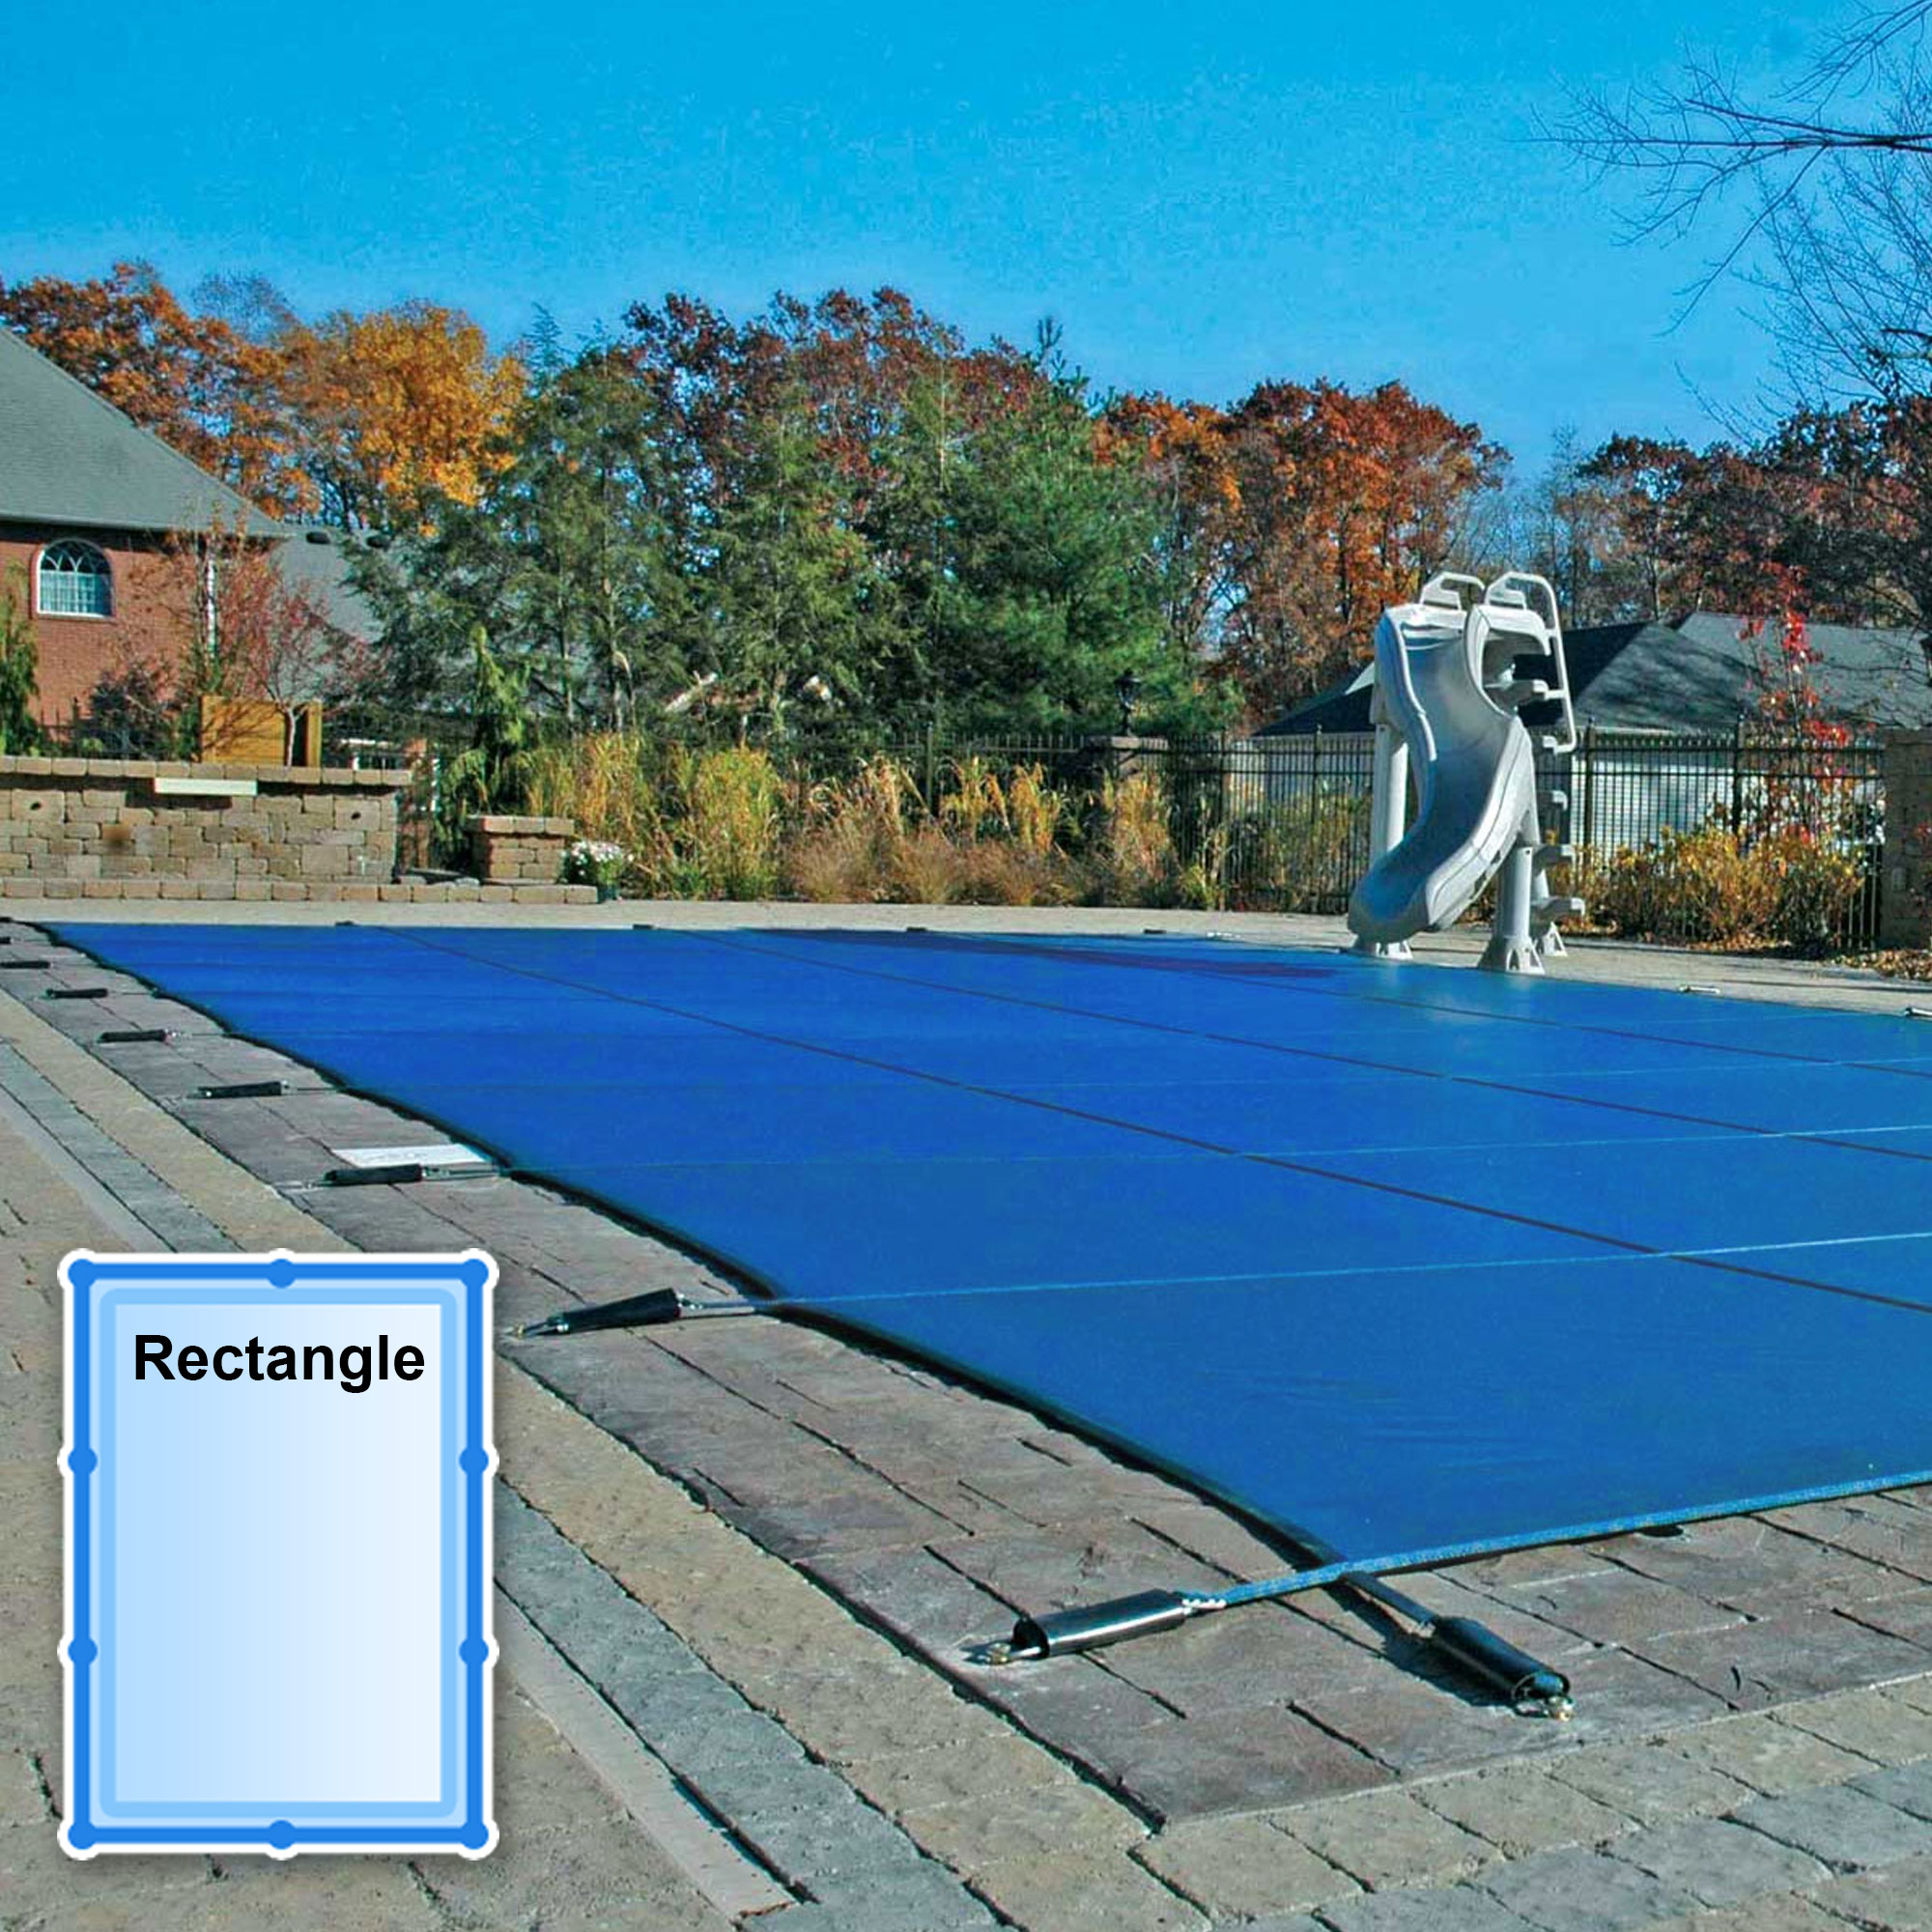 20 x 40 ft. Rectangle Mesh Safety Pool Cover - Blue Mesh